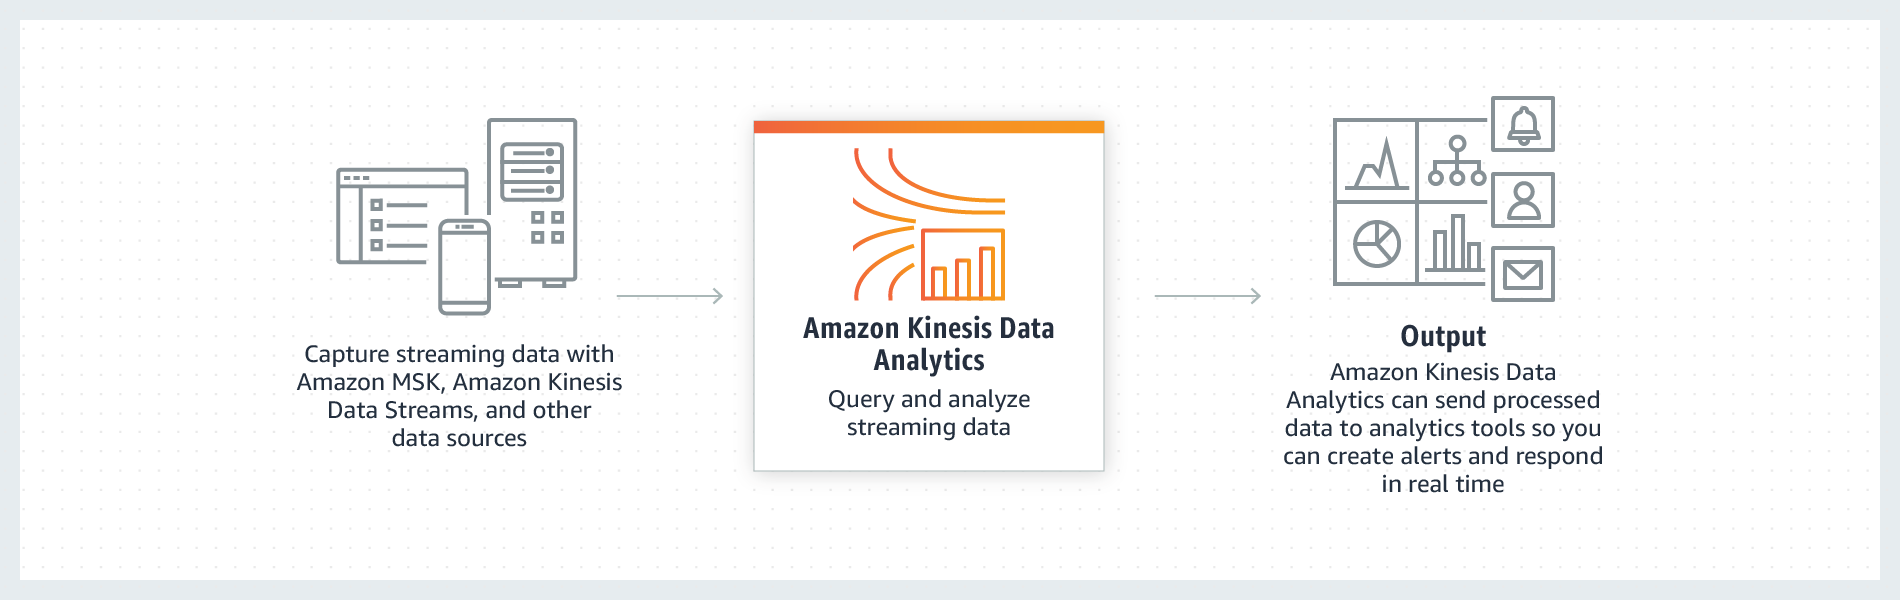 Amazon Kinesis Data Analytics 的運作方式